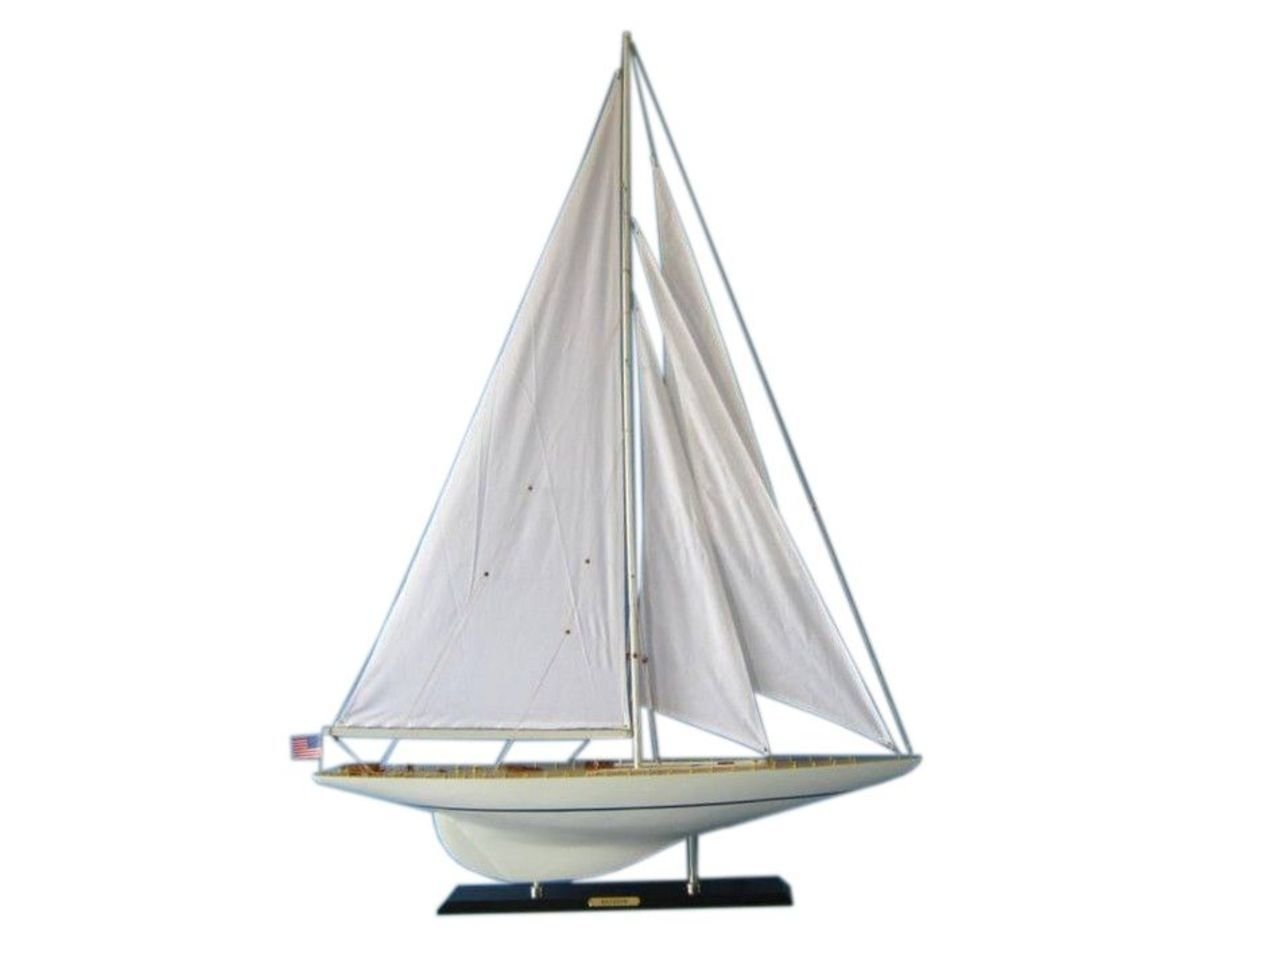 Handcrafted Model Ships Jyacht - 1 - 50 Rainbow Limited 50 in. Tall Sail Boat Decorative Accent B00V3CBO5O